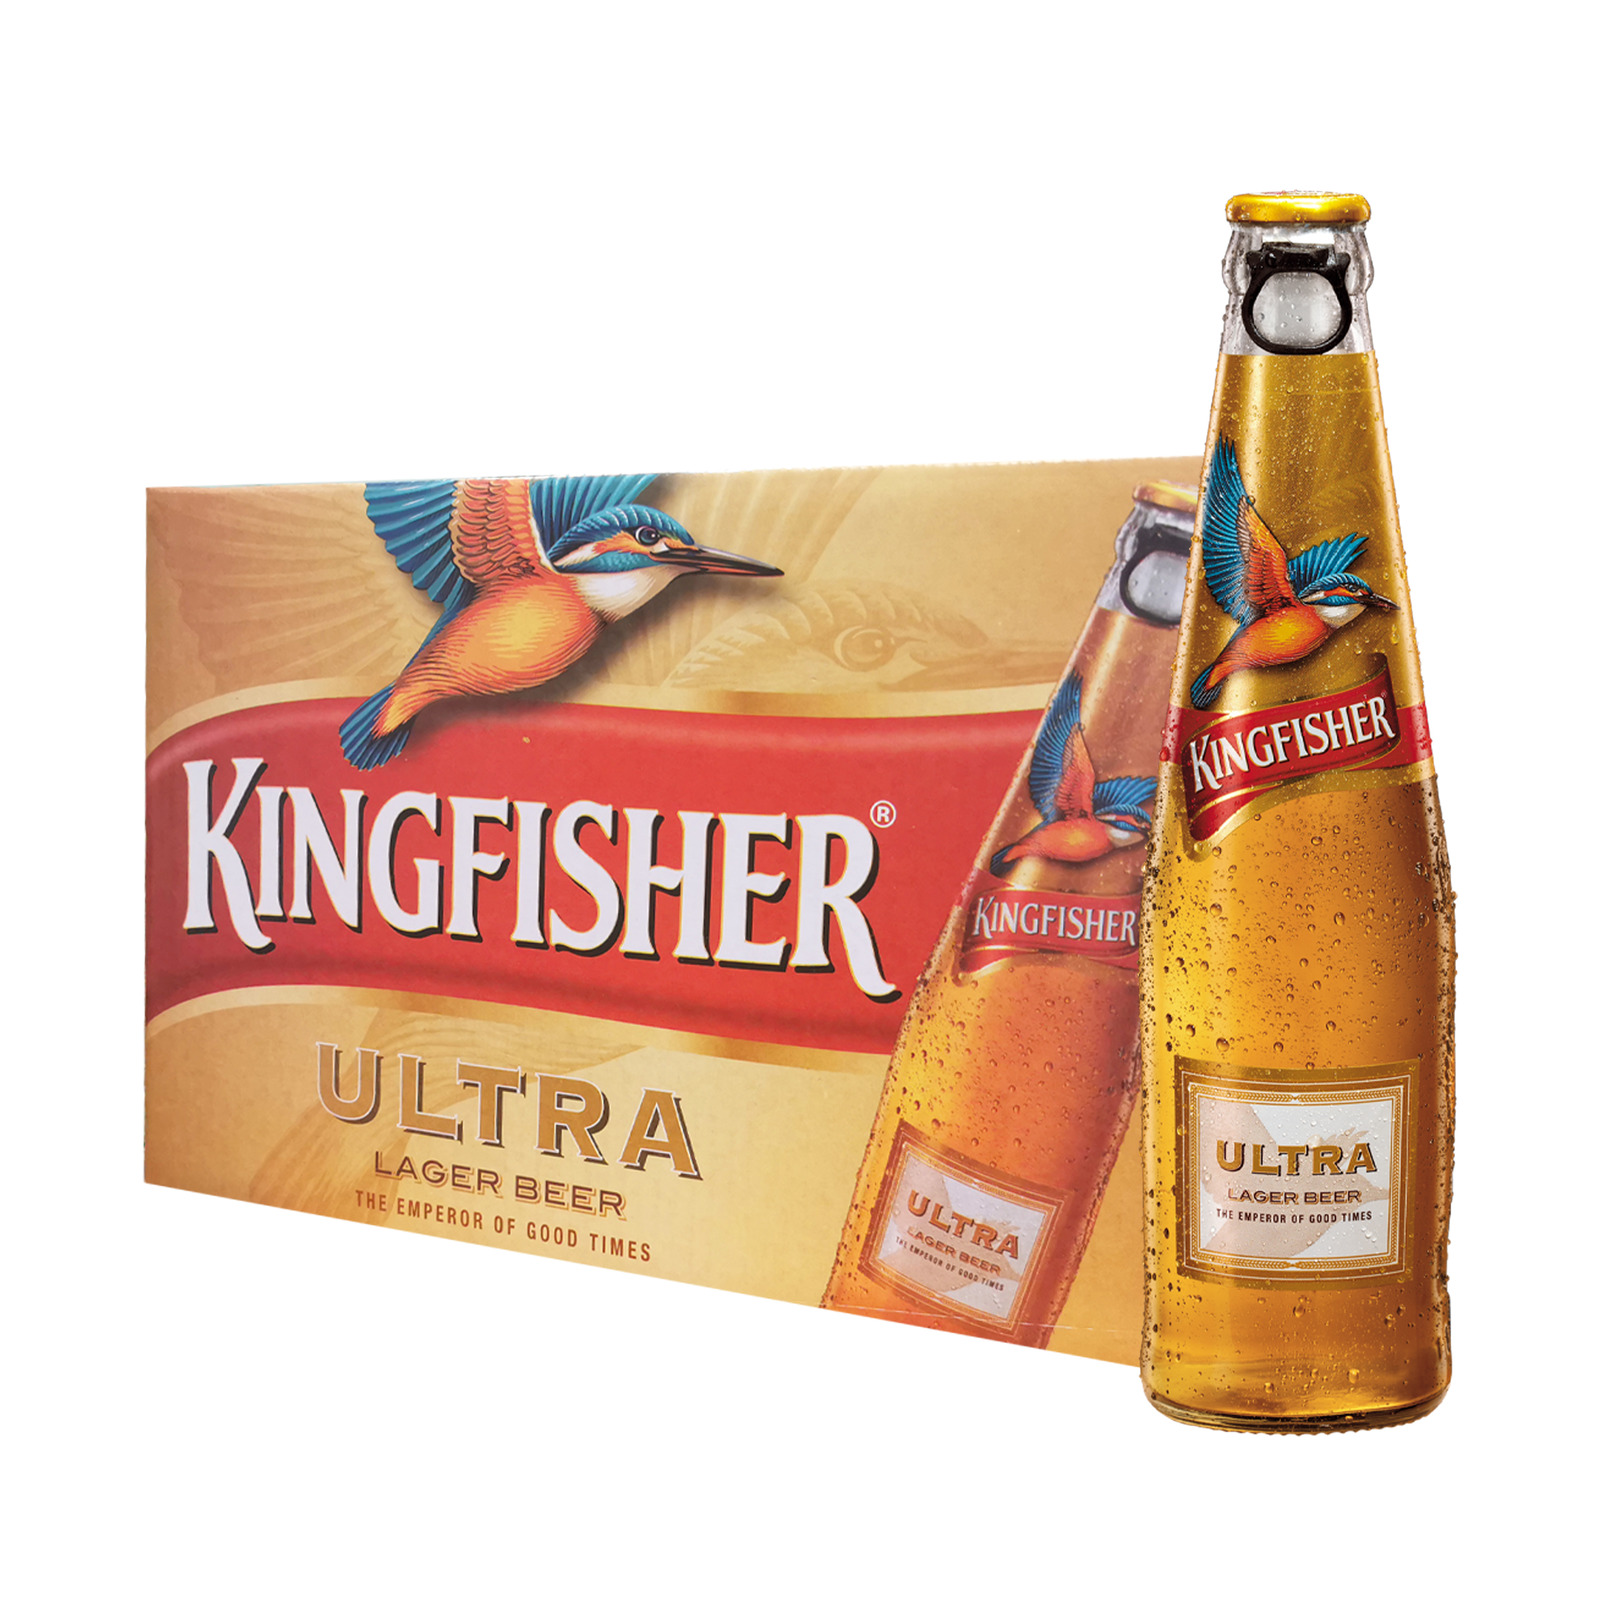 Kingfisher Ultra Lager Beer - Case - By Sonnamera